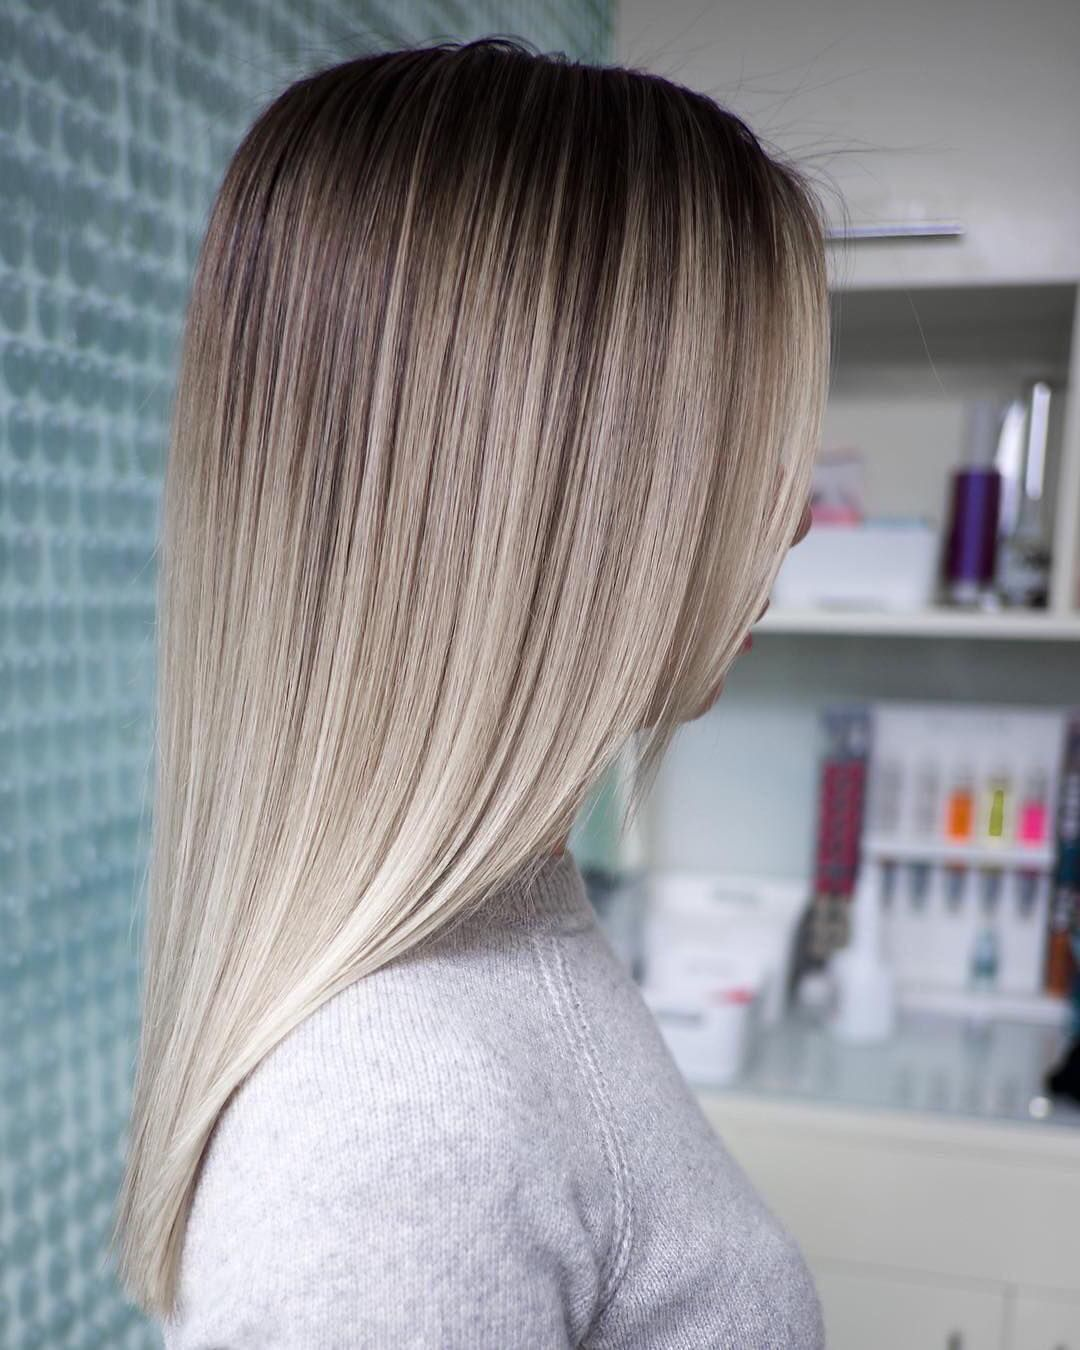 10 balayage ombre long hairstyles from subtle to stunning – new best hairstyle